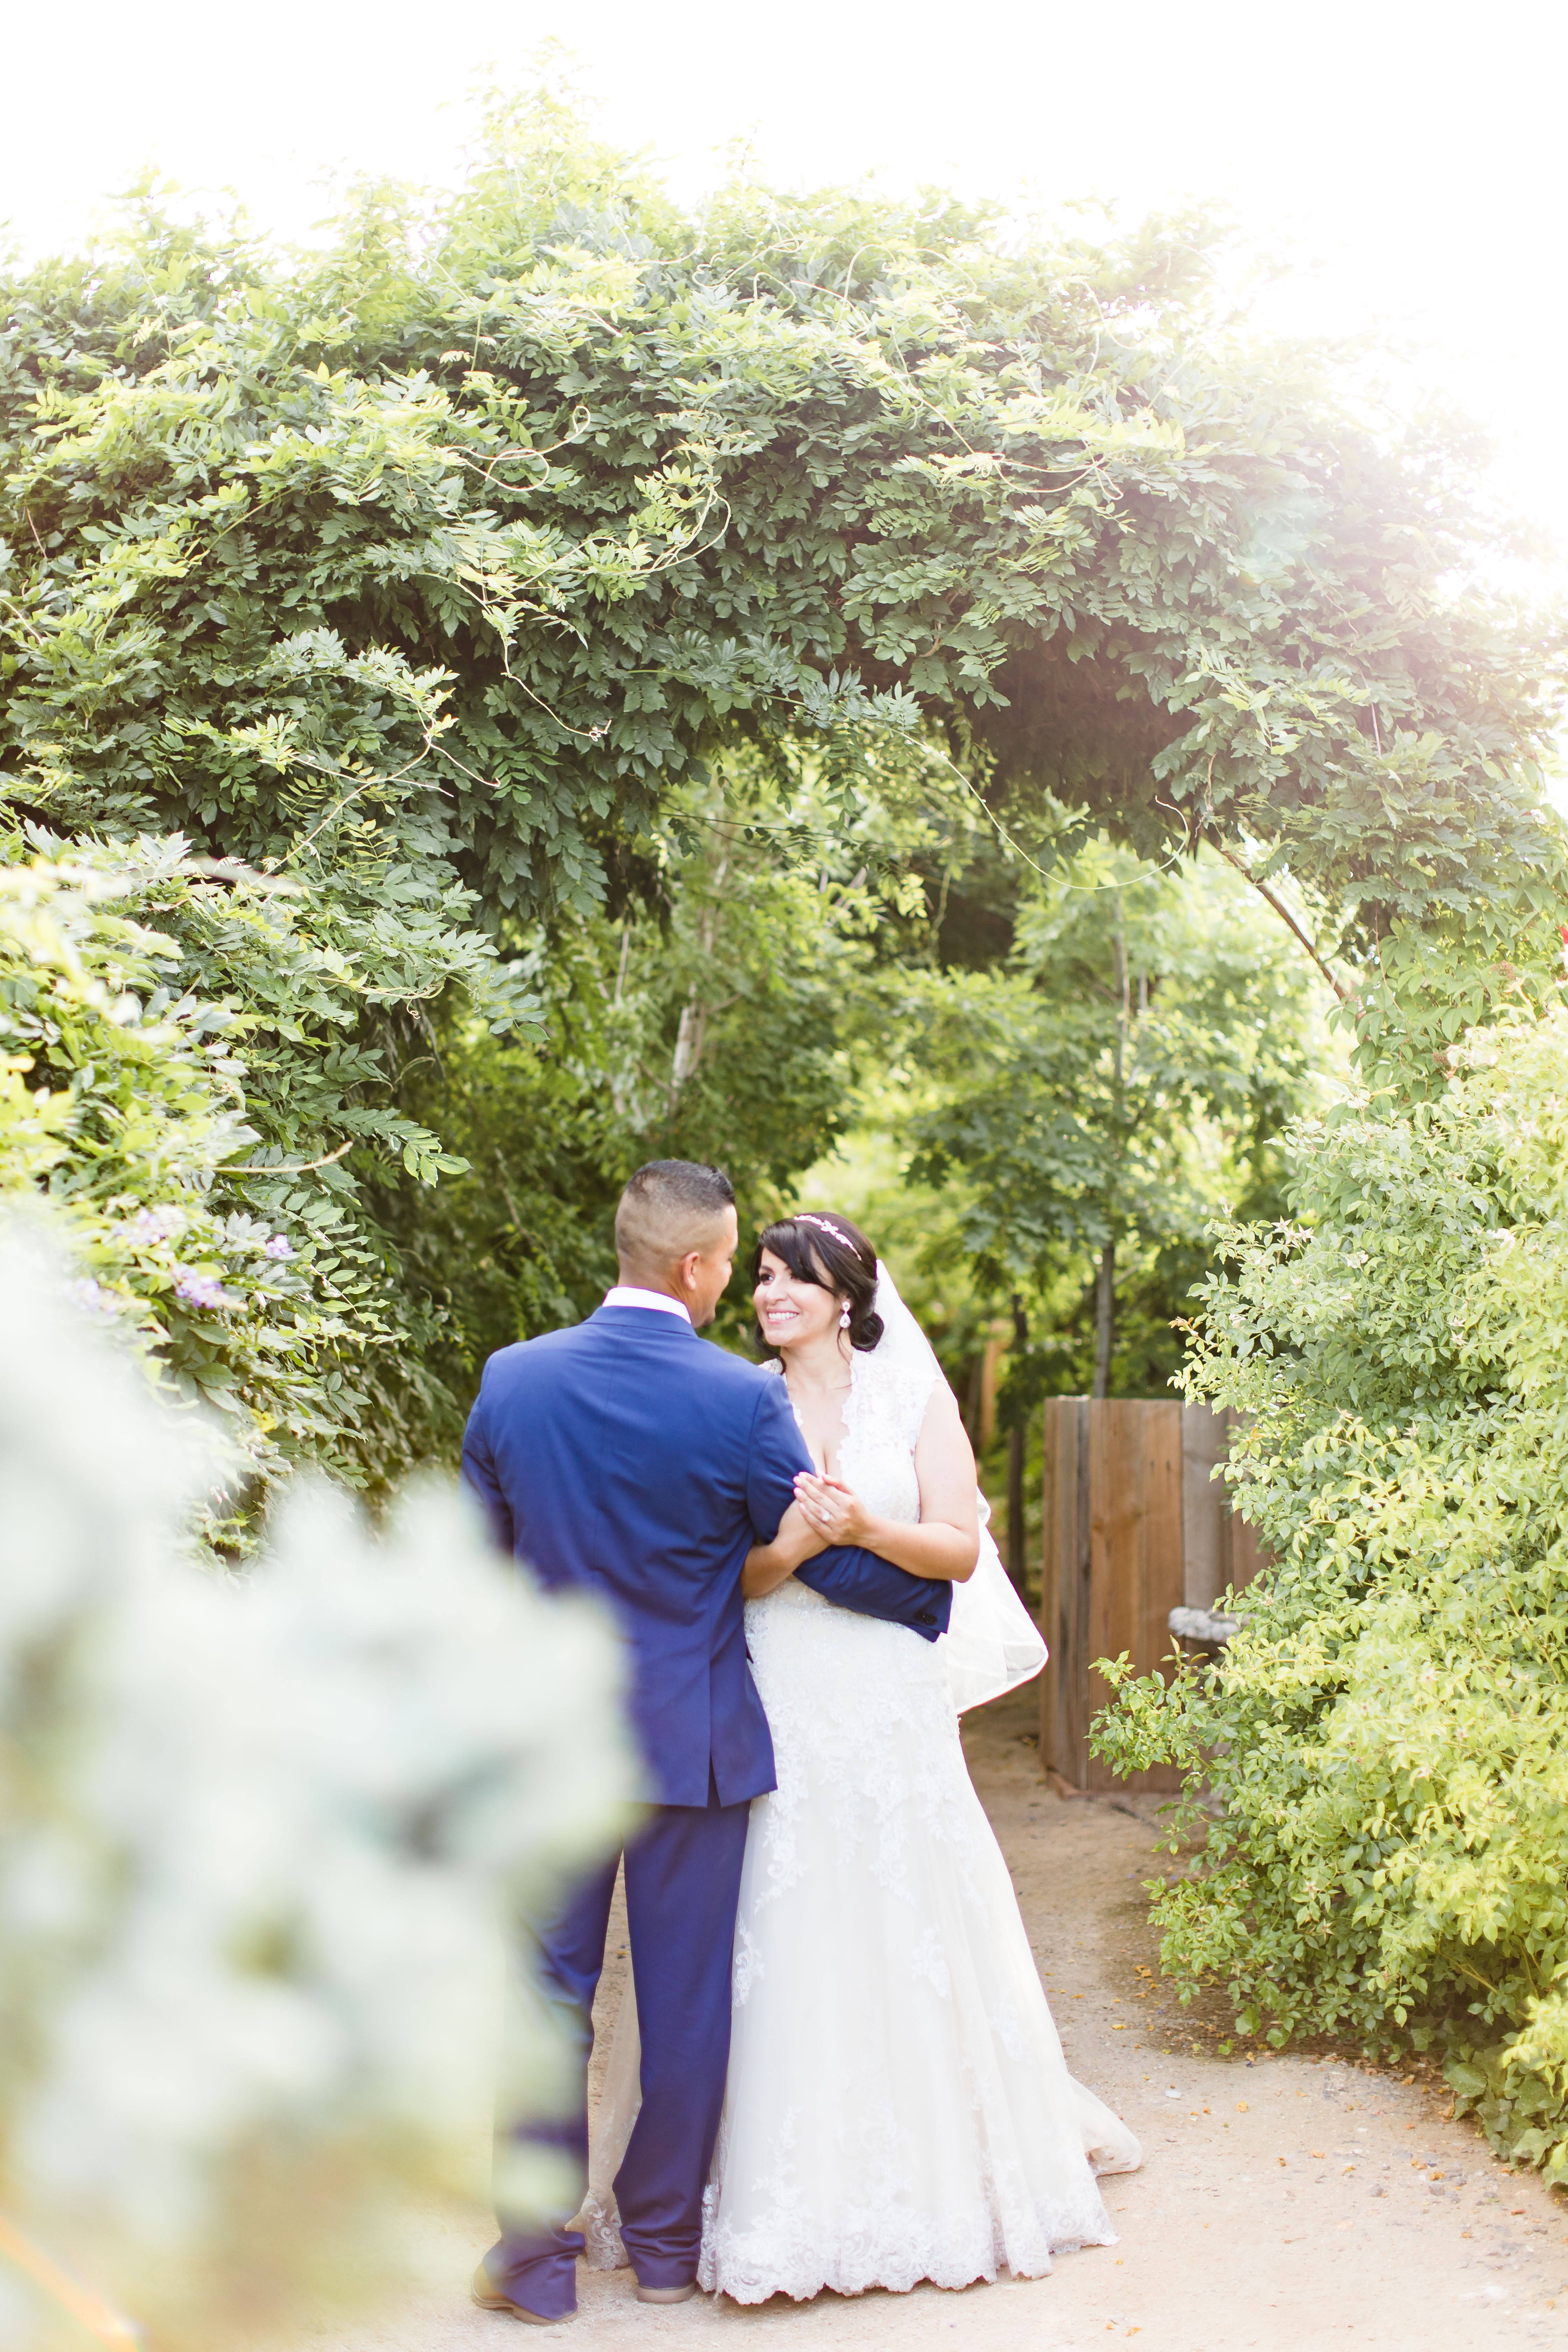 Wedding Photo Ideas Wedding Photos Wedding Pictures Must Have Wedding Pictures